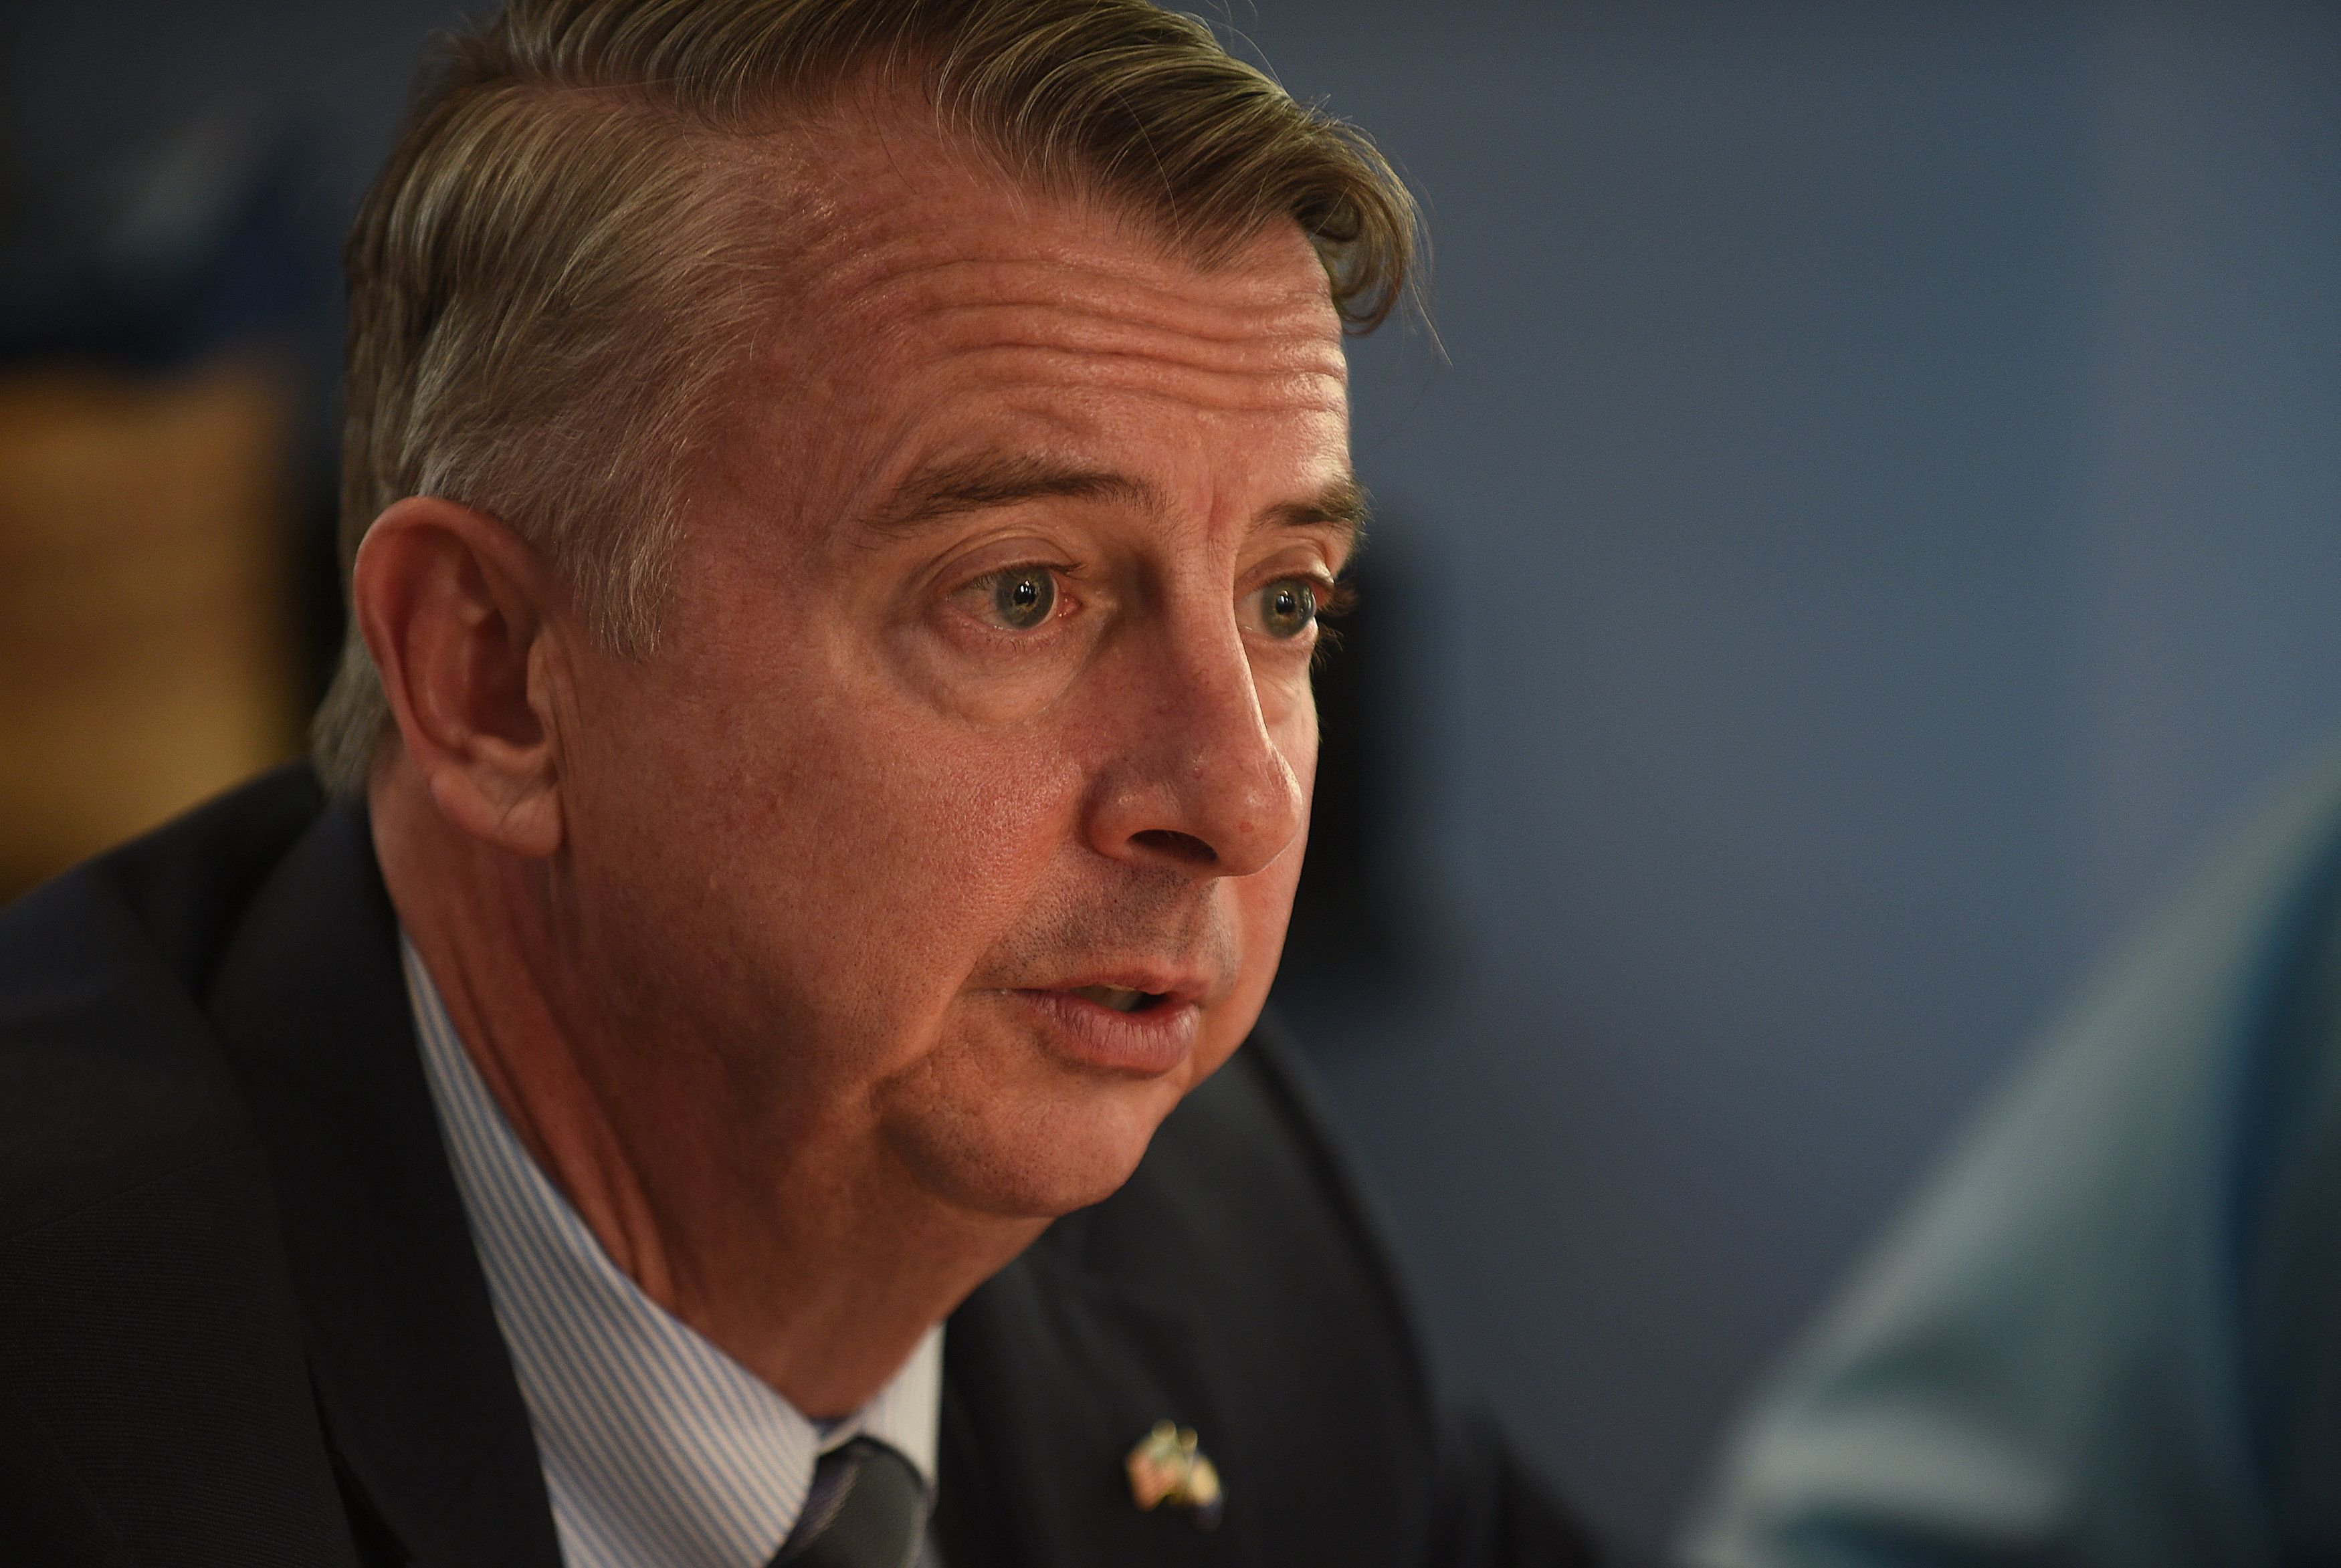 An ad from Virginia GOP gubernatorial candidate Ed Gillespie accuses Democrats in the state of jeopardizing public safet